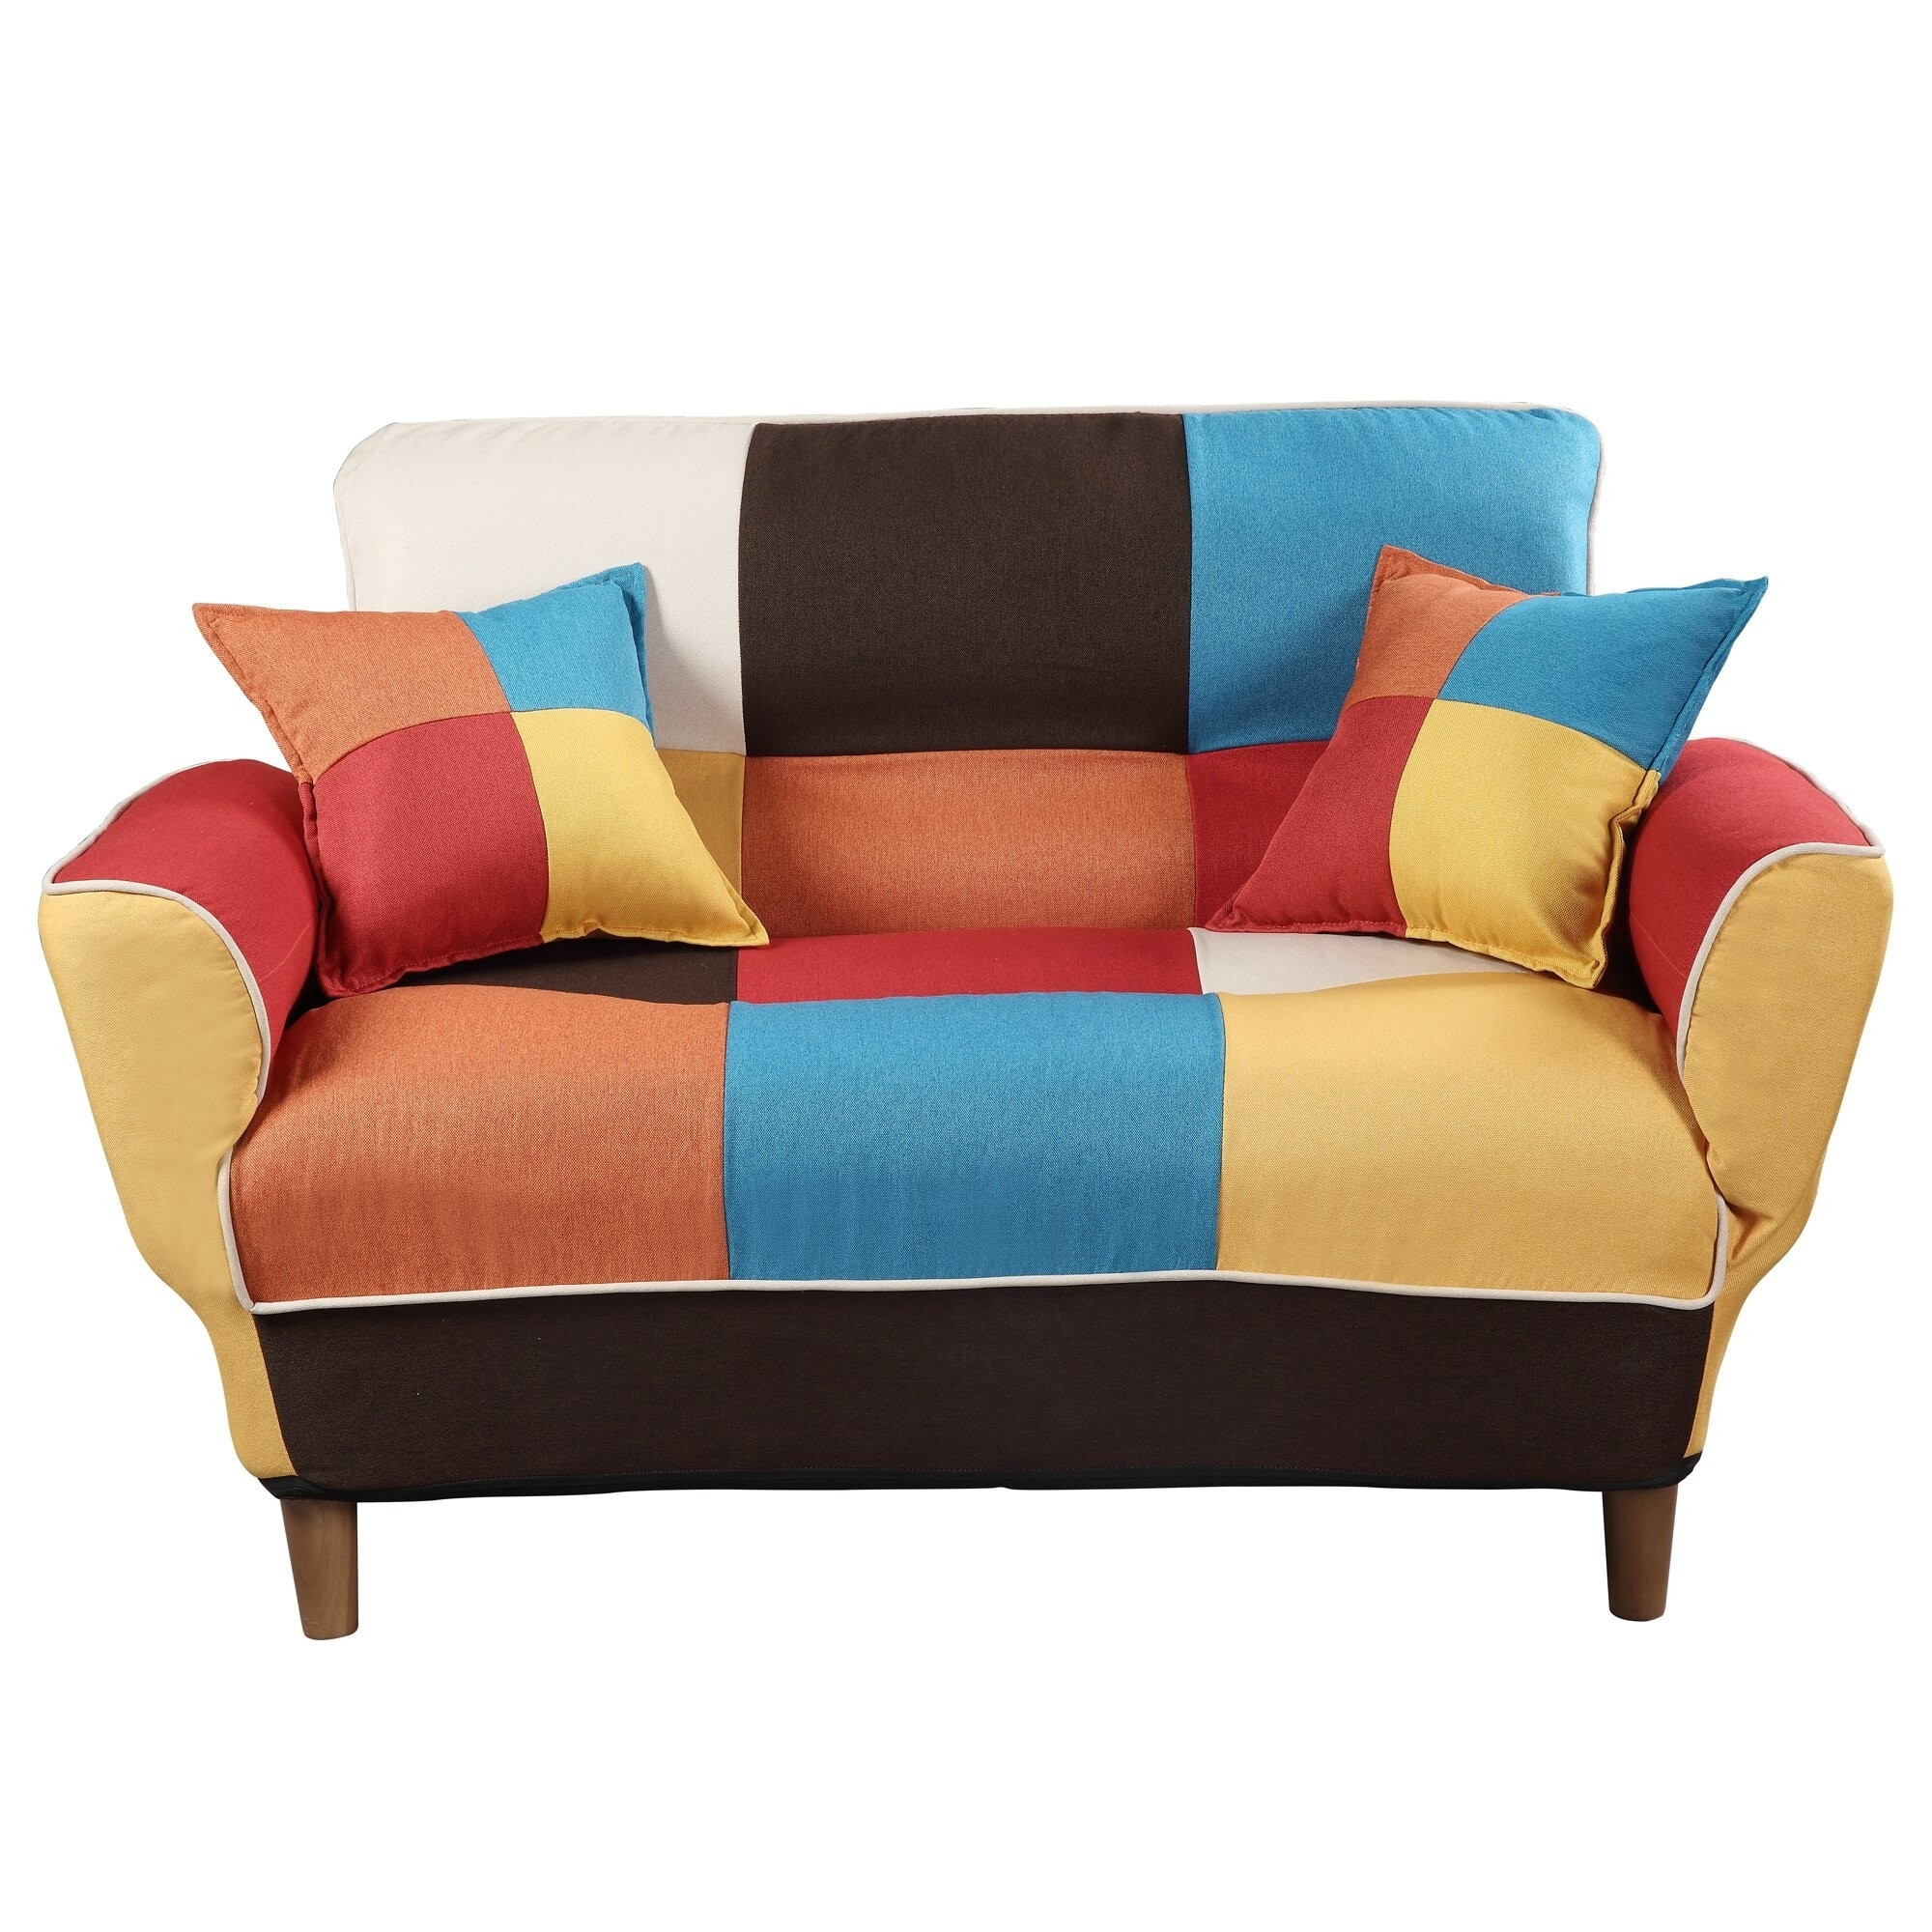 Game Room Sofas Ideas On Foter